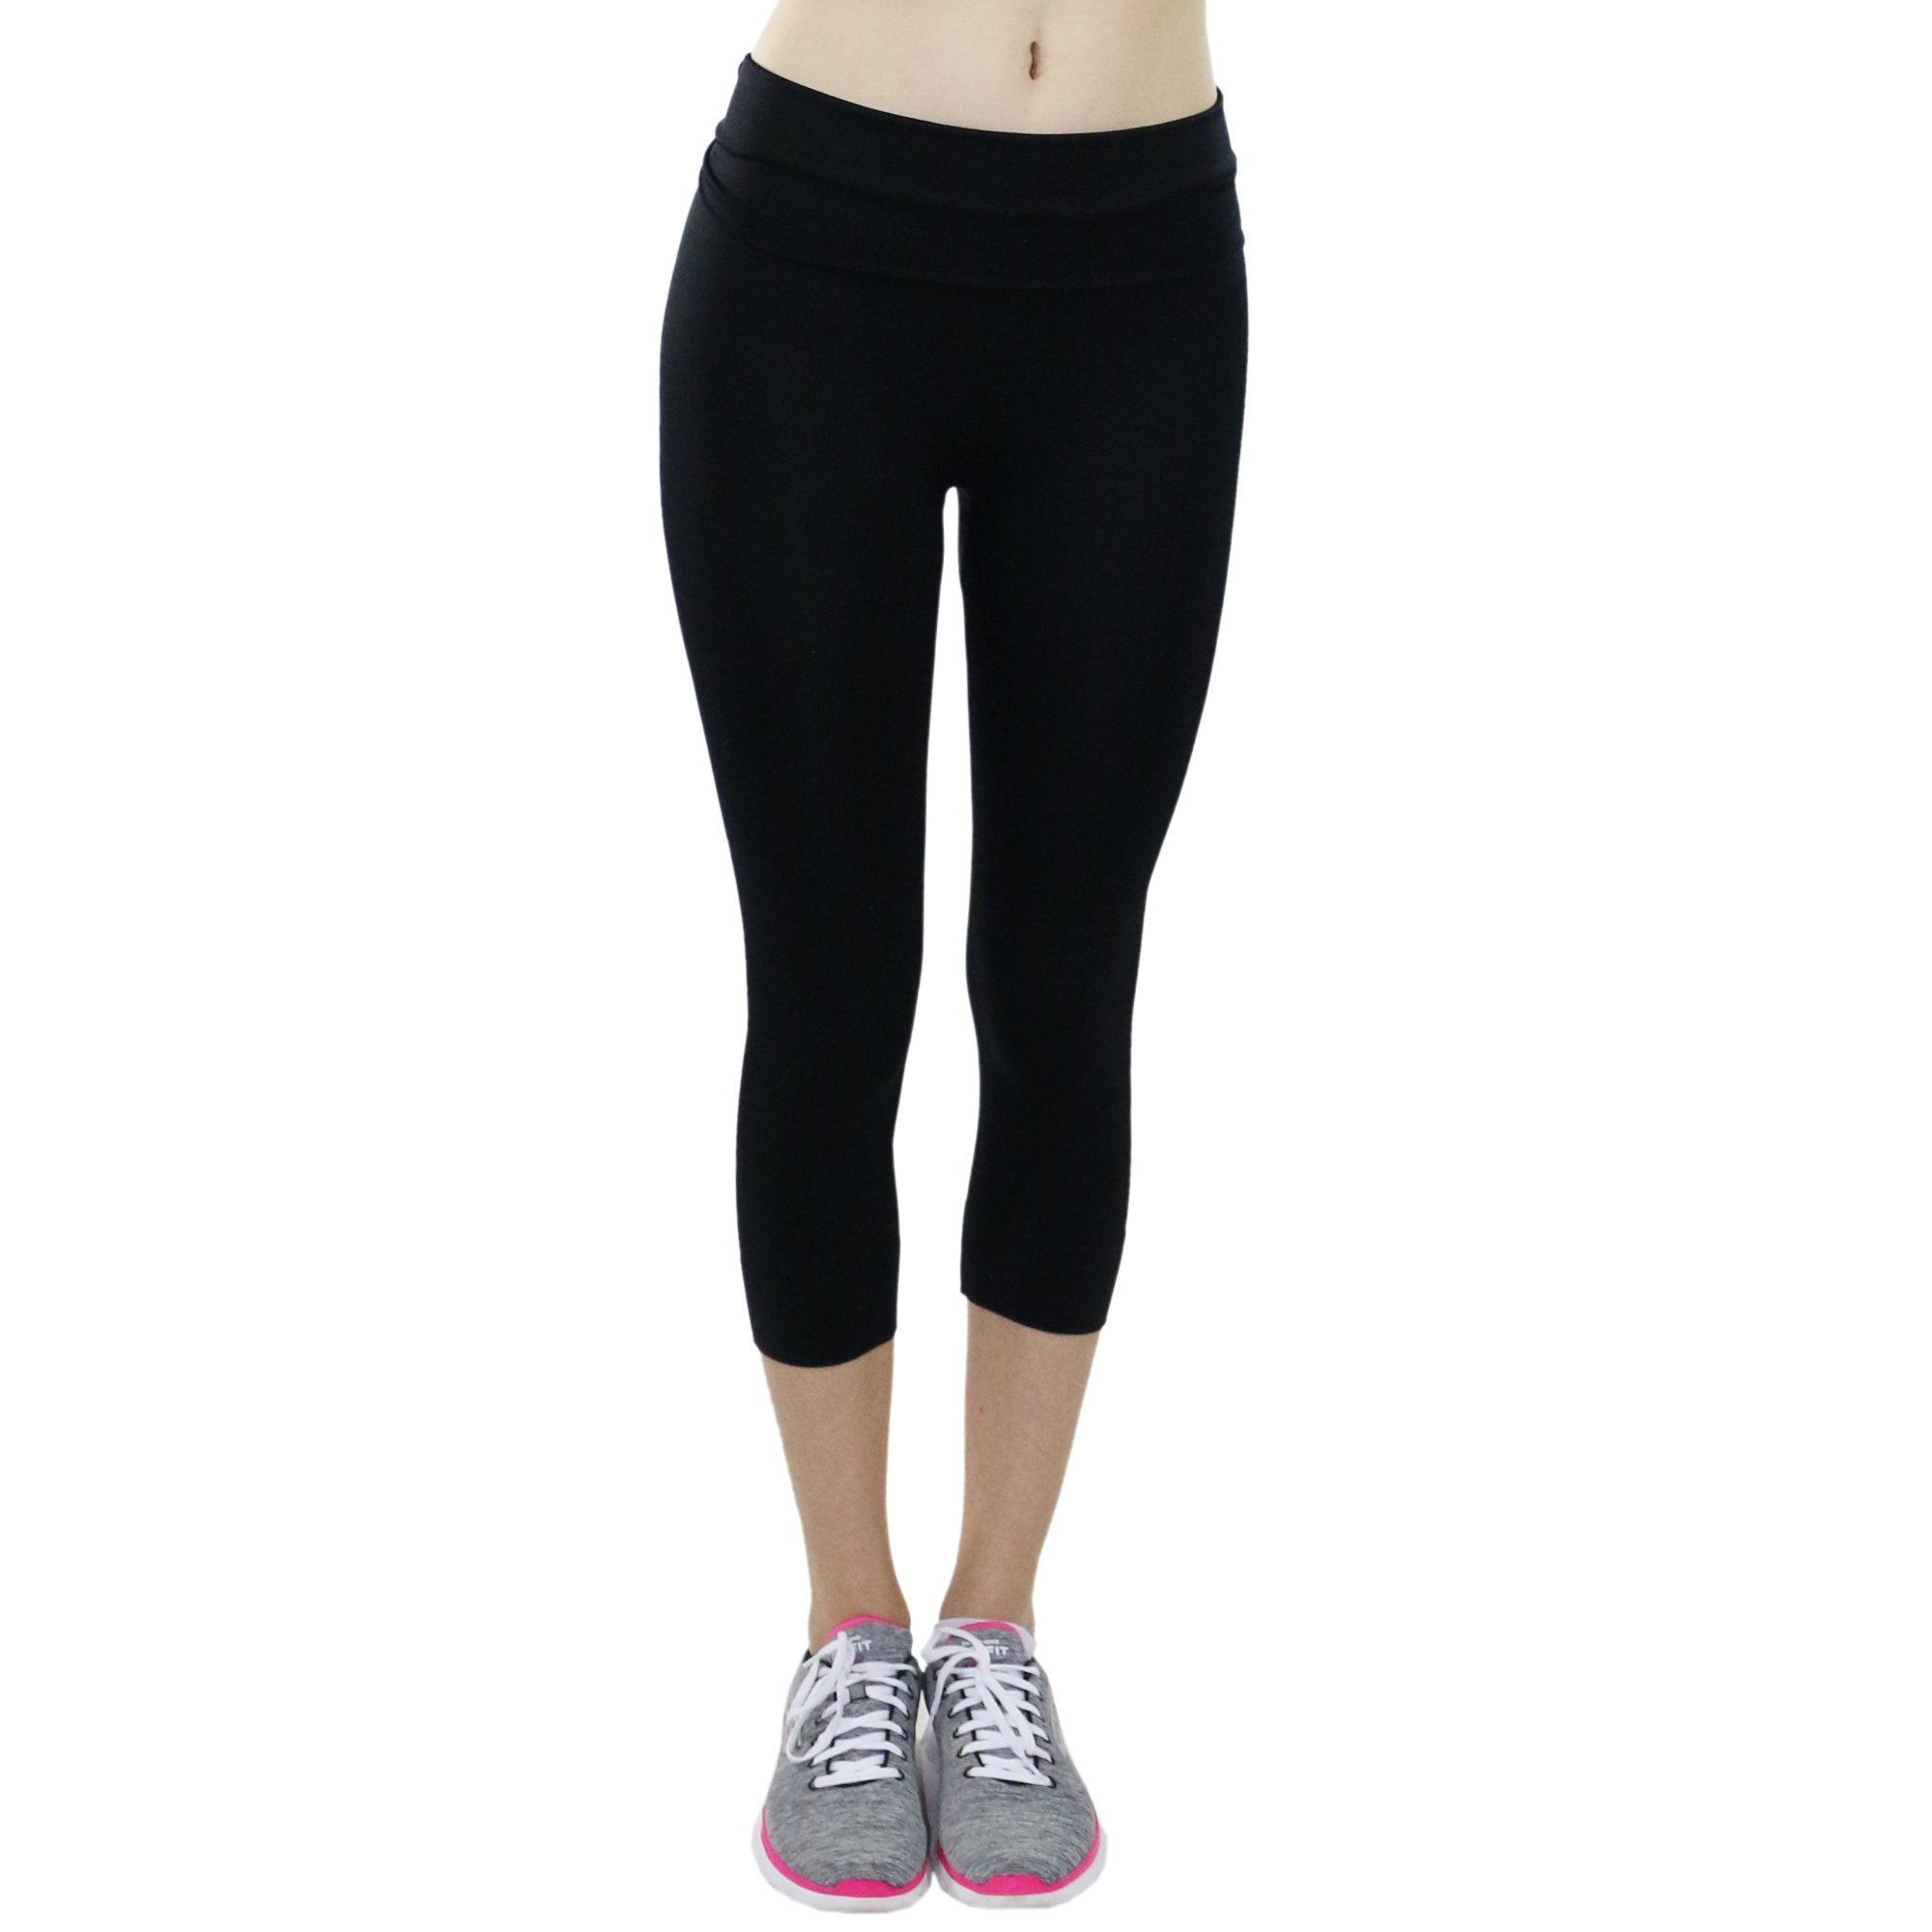 Fitcue Womens High Waist Actuve-fit Sports Capri